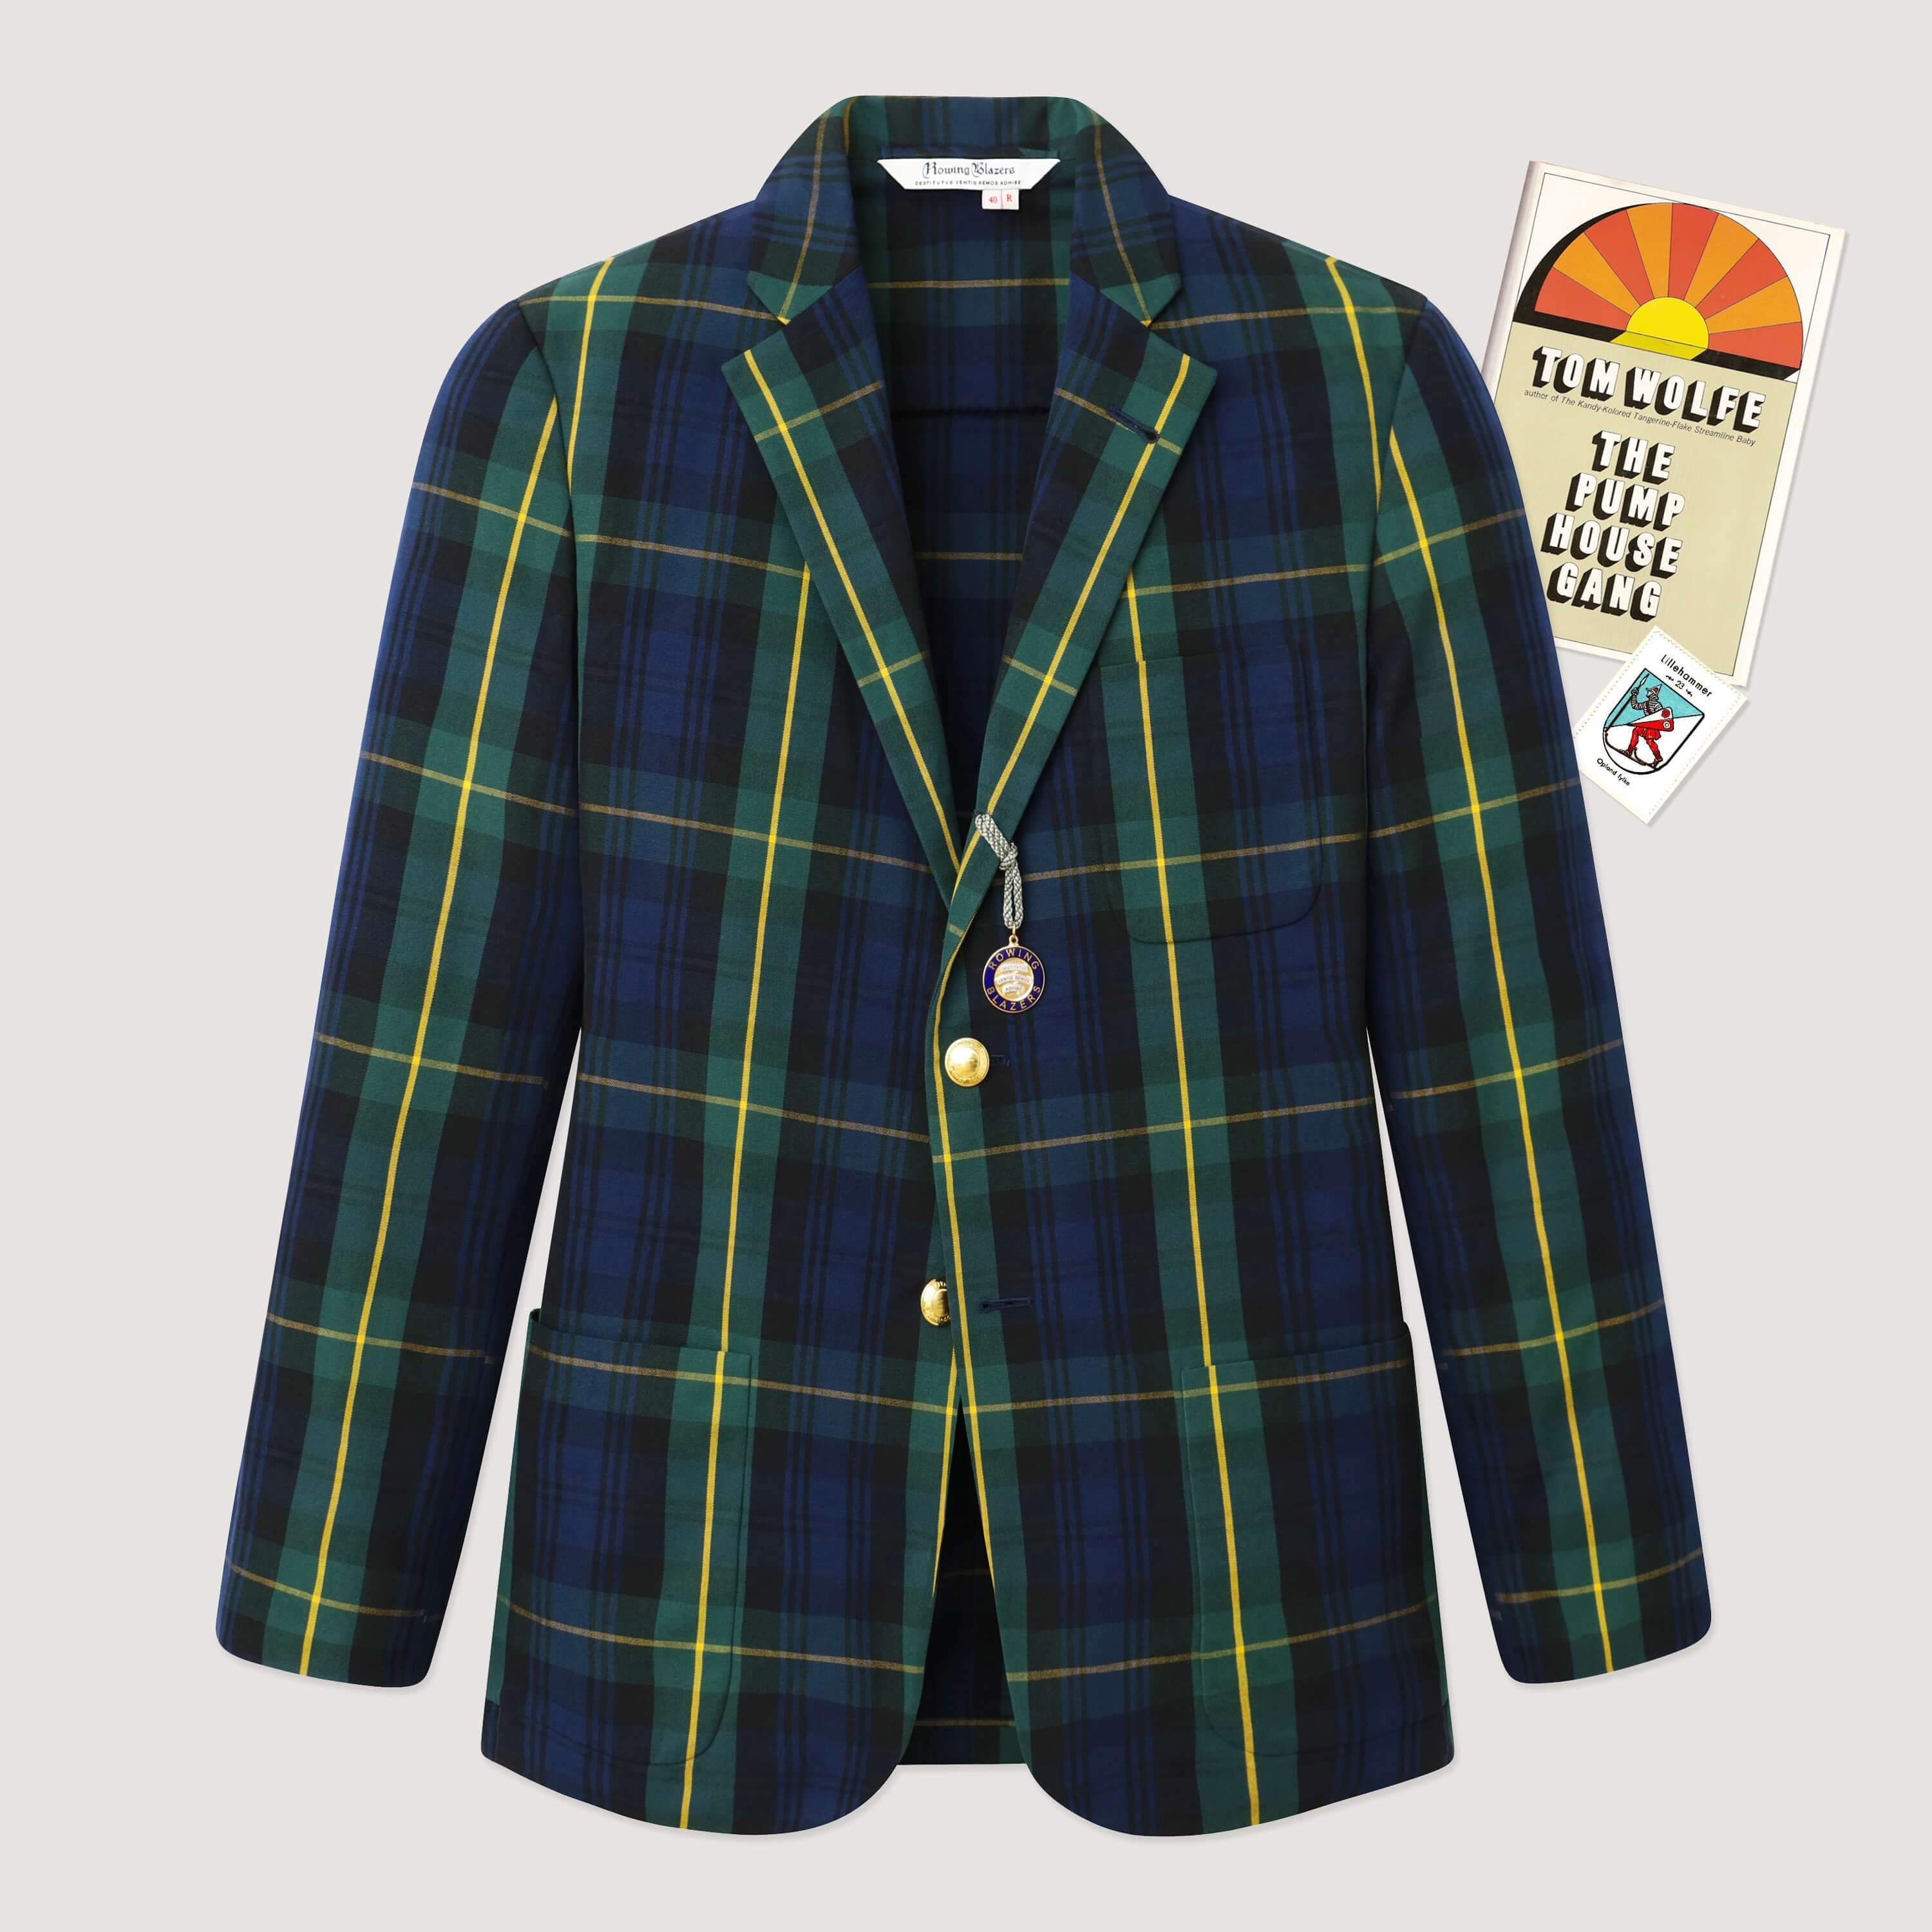 3roll2 singlebreasted jacket (Gordon Modern tartan